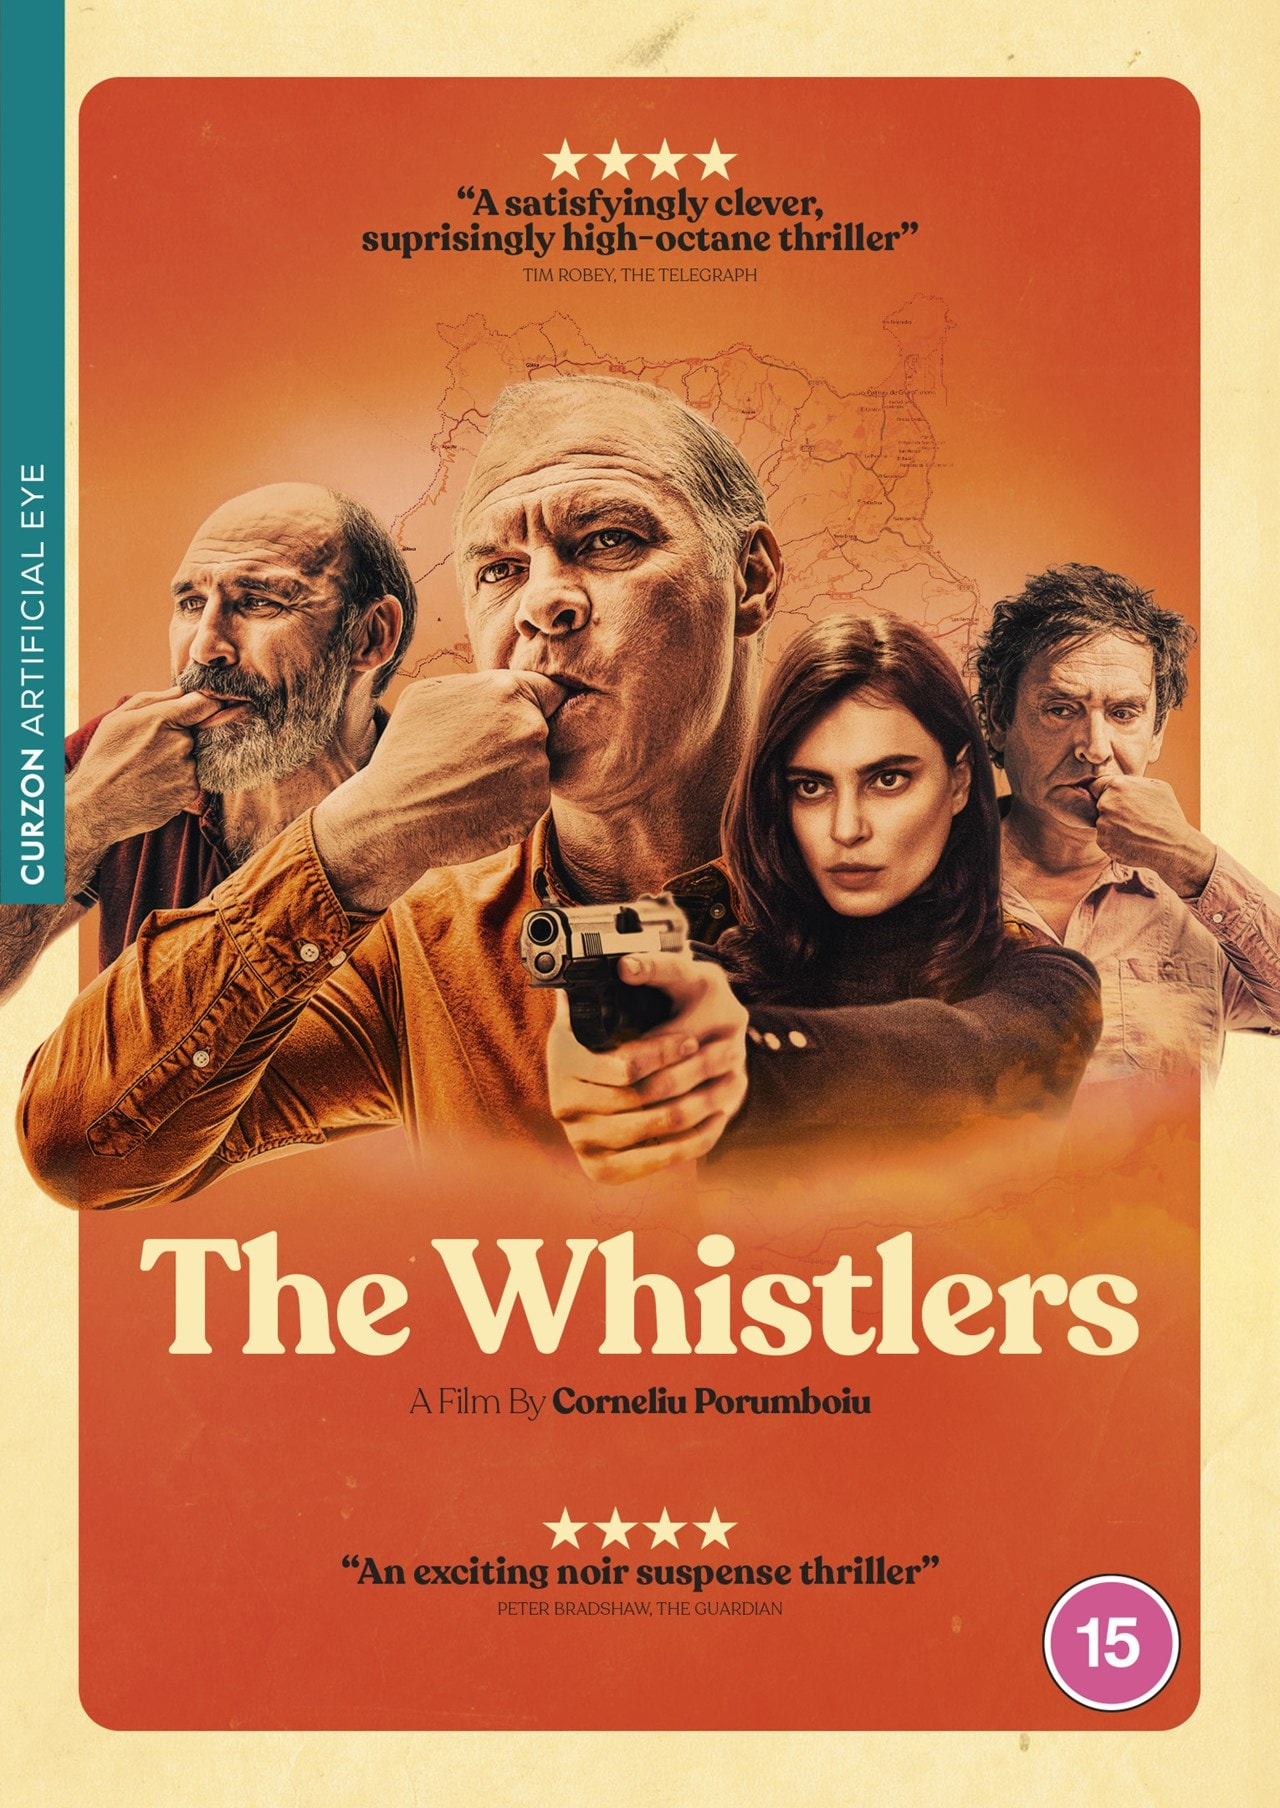 The Whistlers - 1